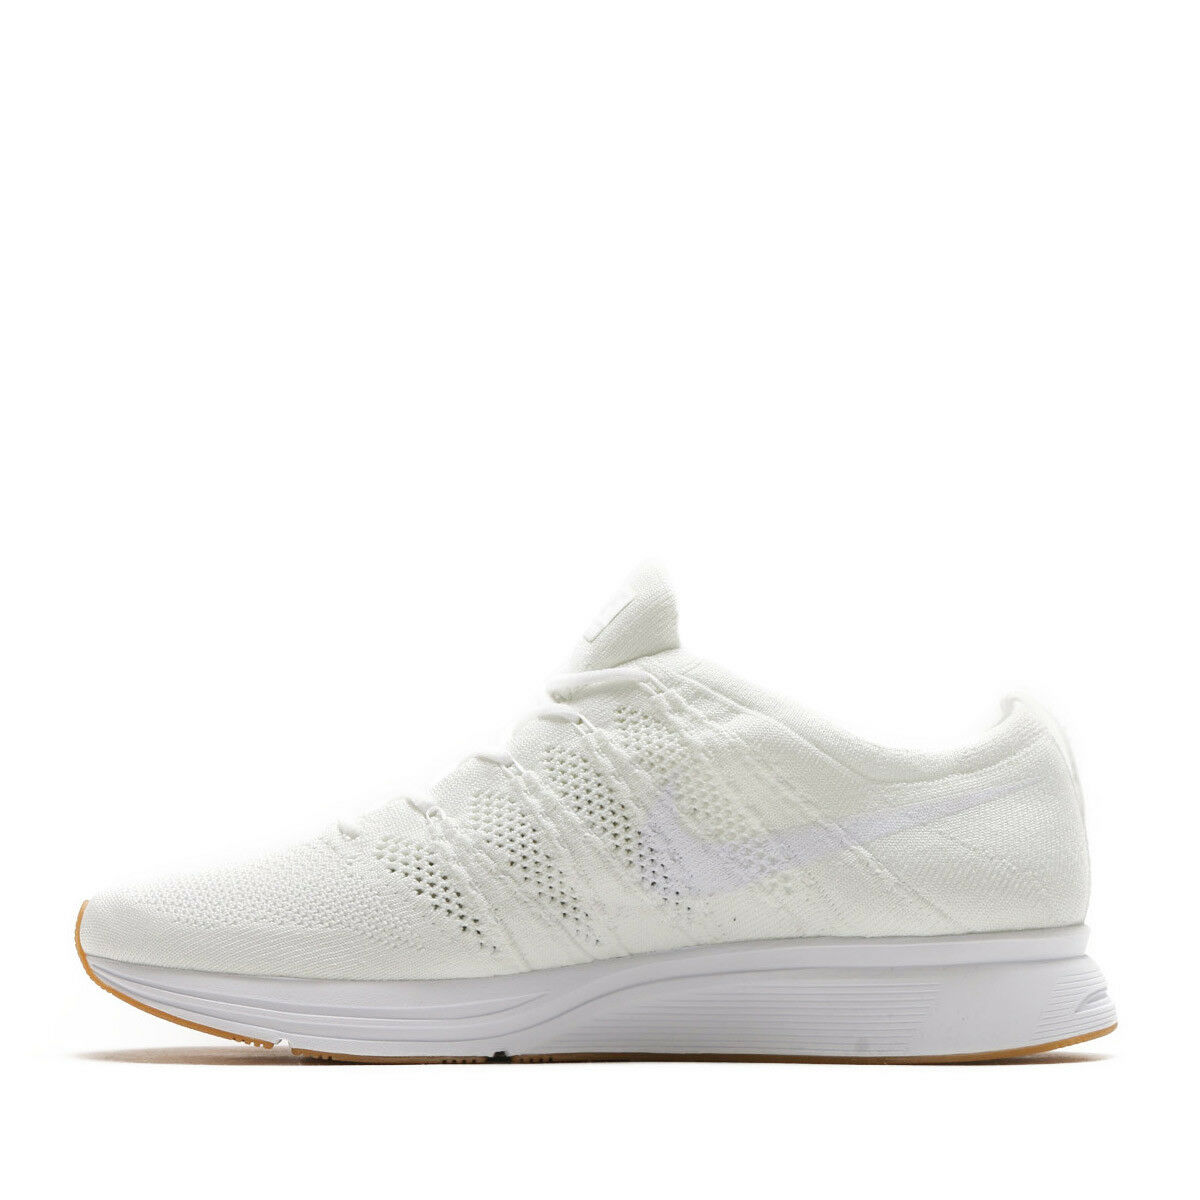 Nike Men Flyknit Trainer Reflective Running shoes White Gum AH8396-102 US7-11 04'